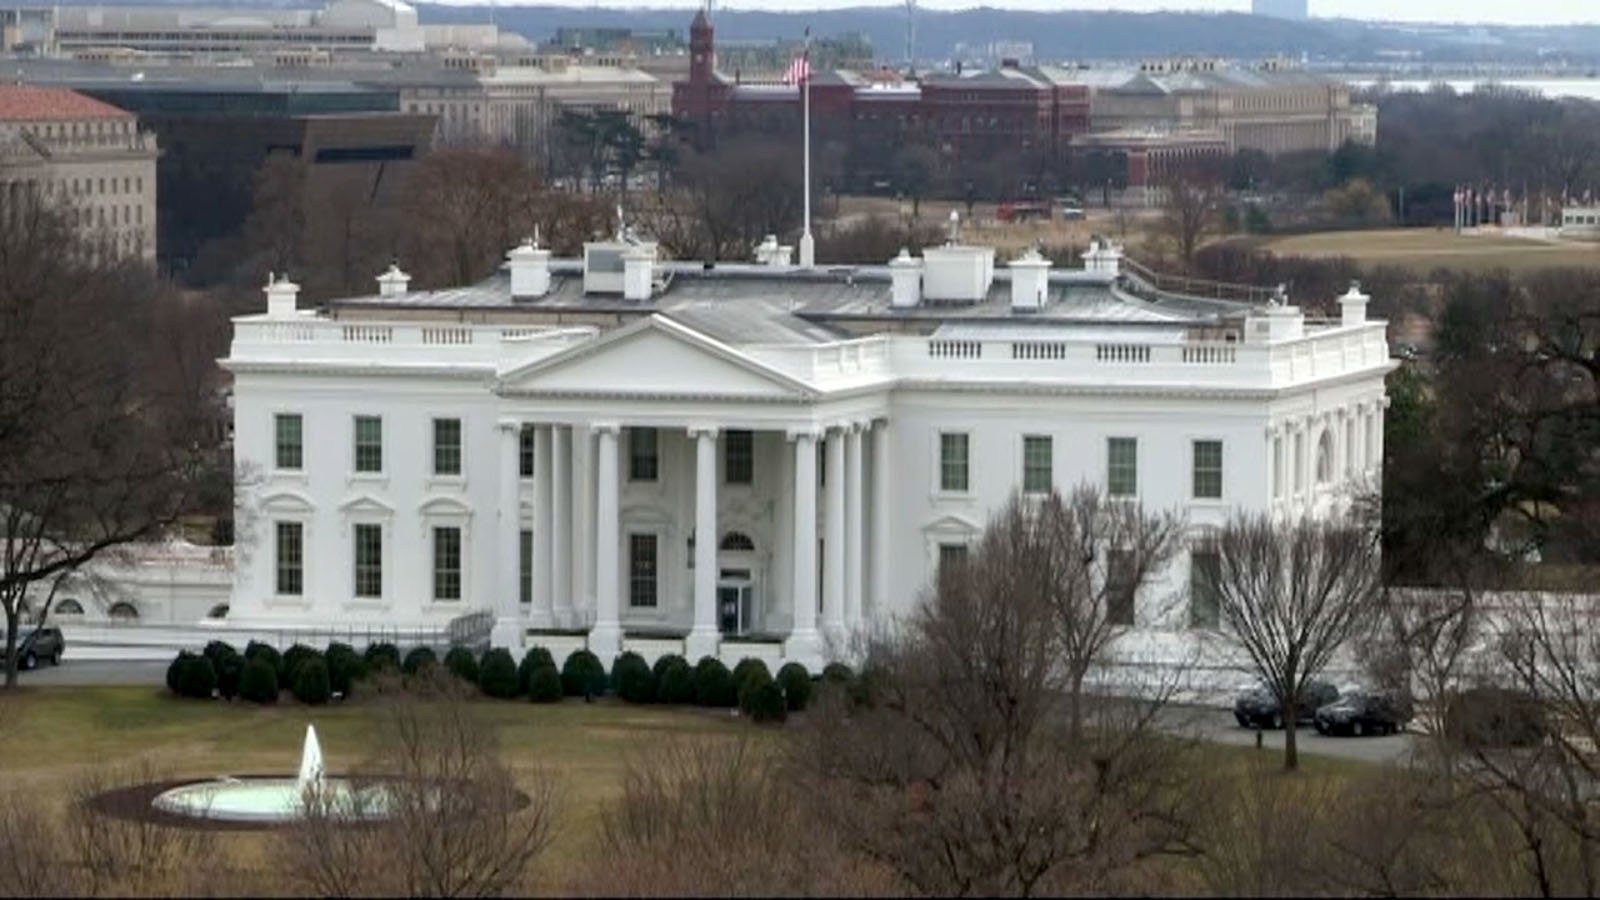 A woman driving a vehicle near the White House hit a security barrier. (Source: Raycom Media)